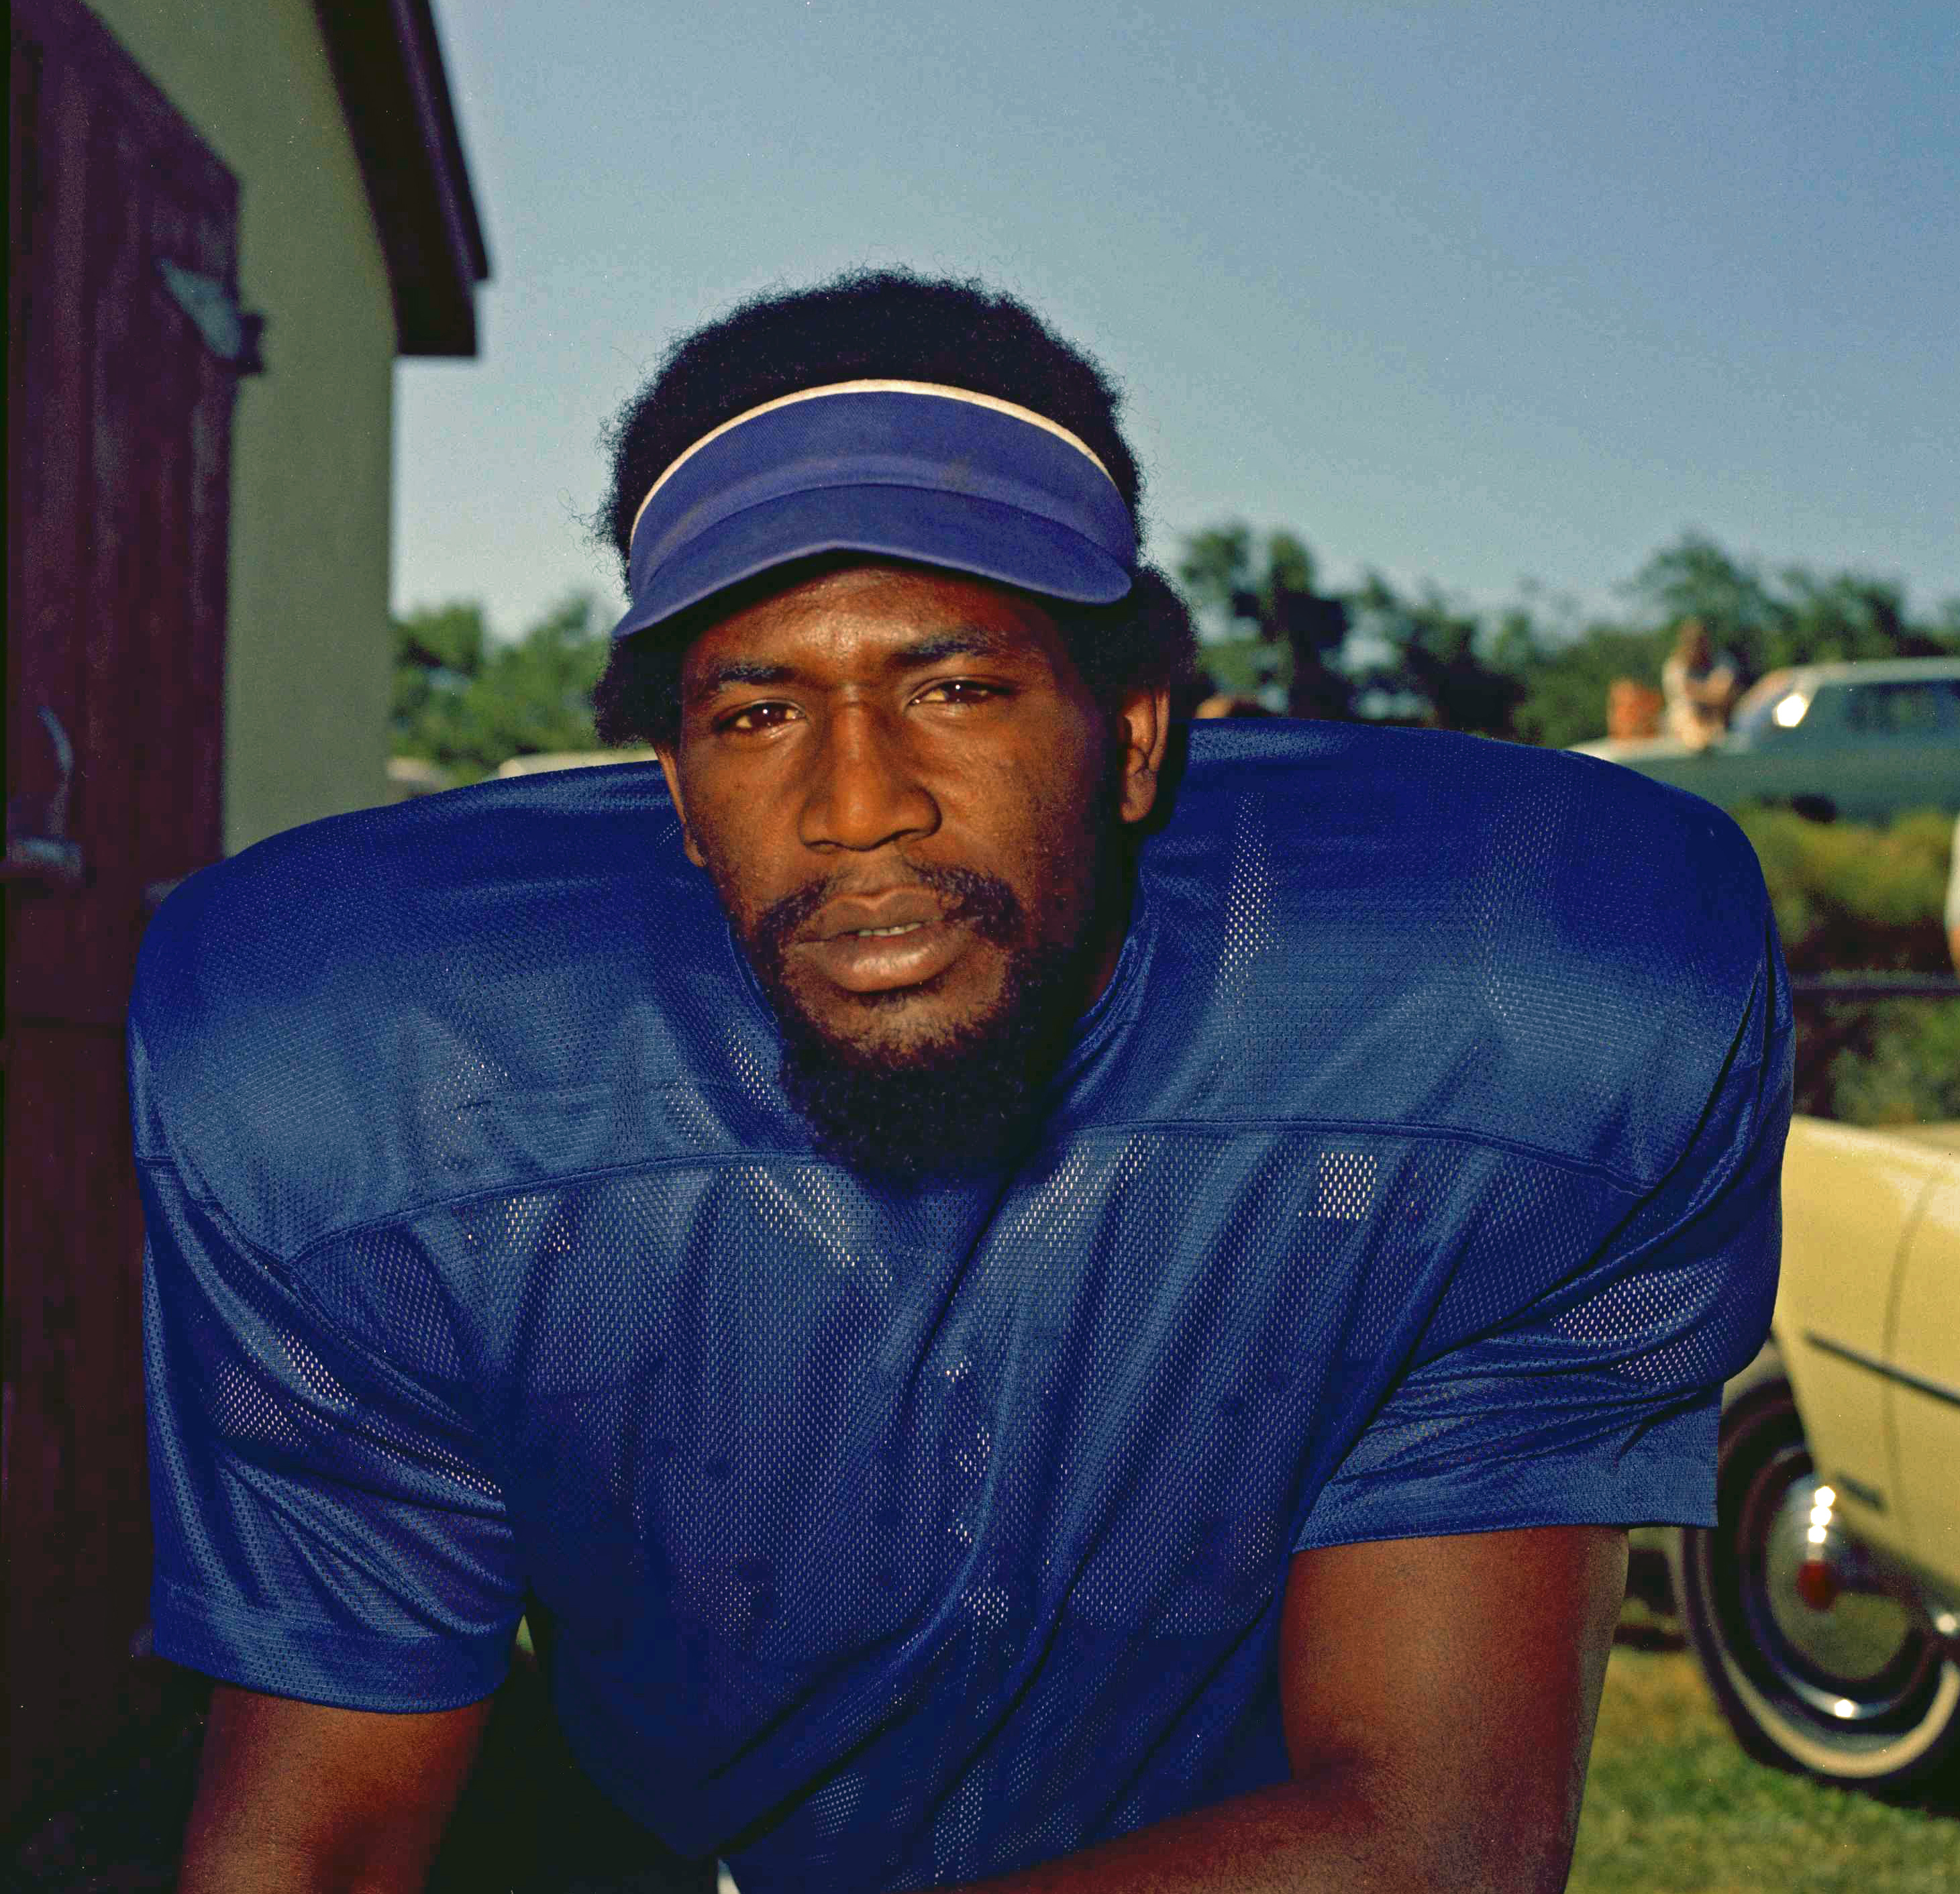 FILe - This is a 1972, file photo, showing Baltimore Colts defensive end Bubba Smith. The Concussion Legacy Foundation says former NFL defensive end Bubba Smith was diagnosed with the brain disease CTE by researchers after his death.  (AP Photo/File)